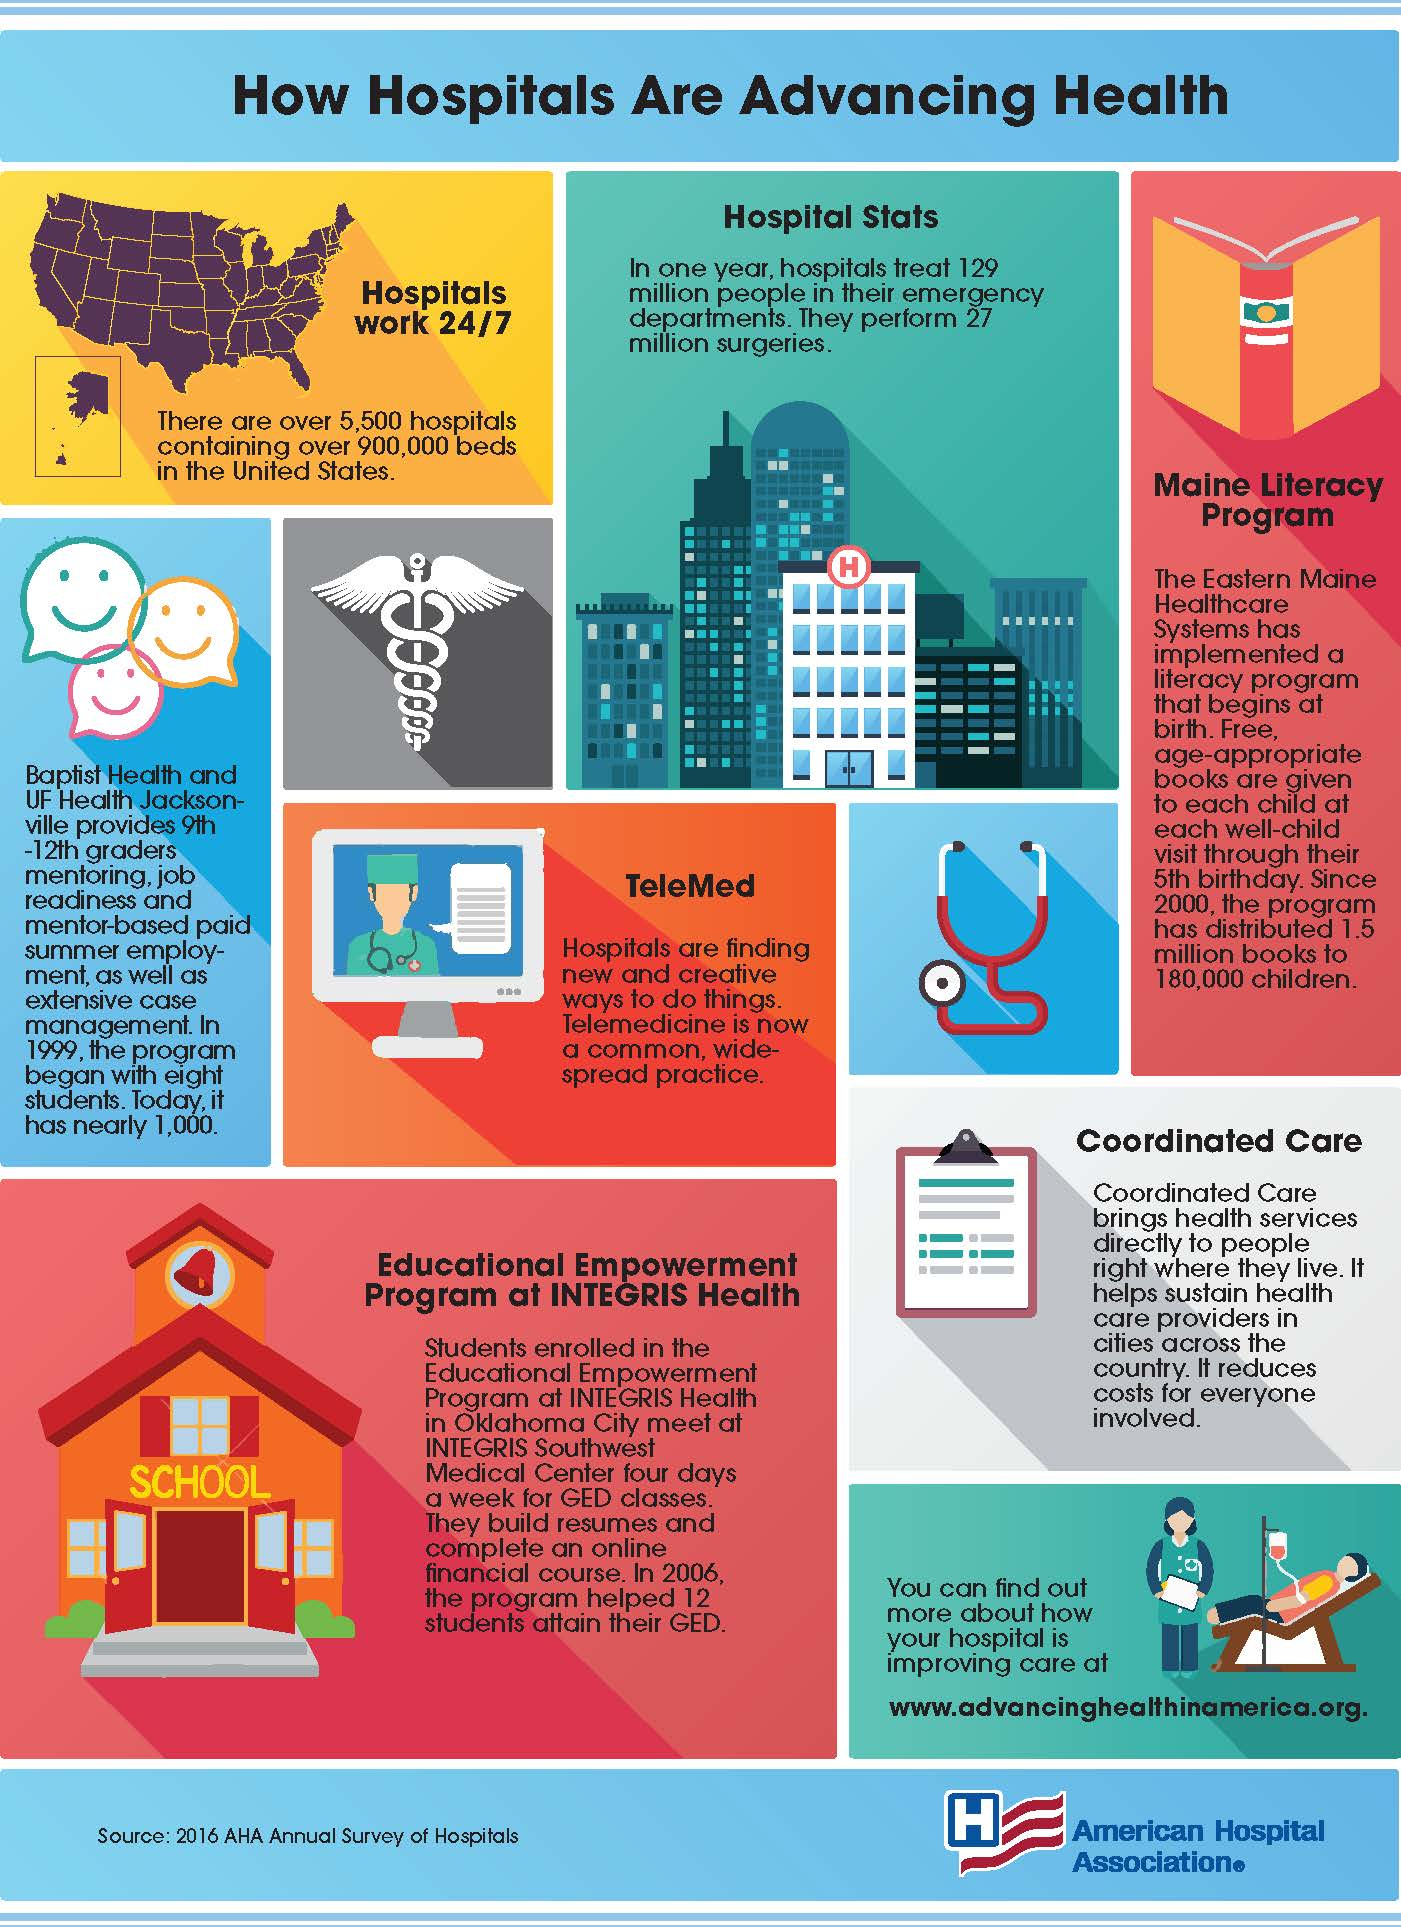 How Hospitals Are Advancing Health Infographic